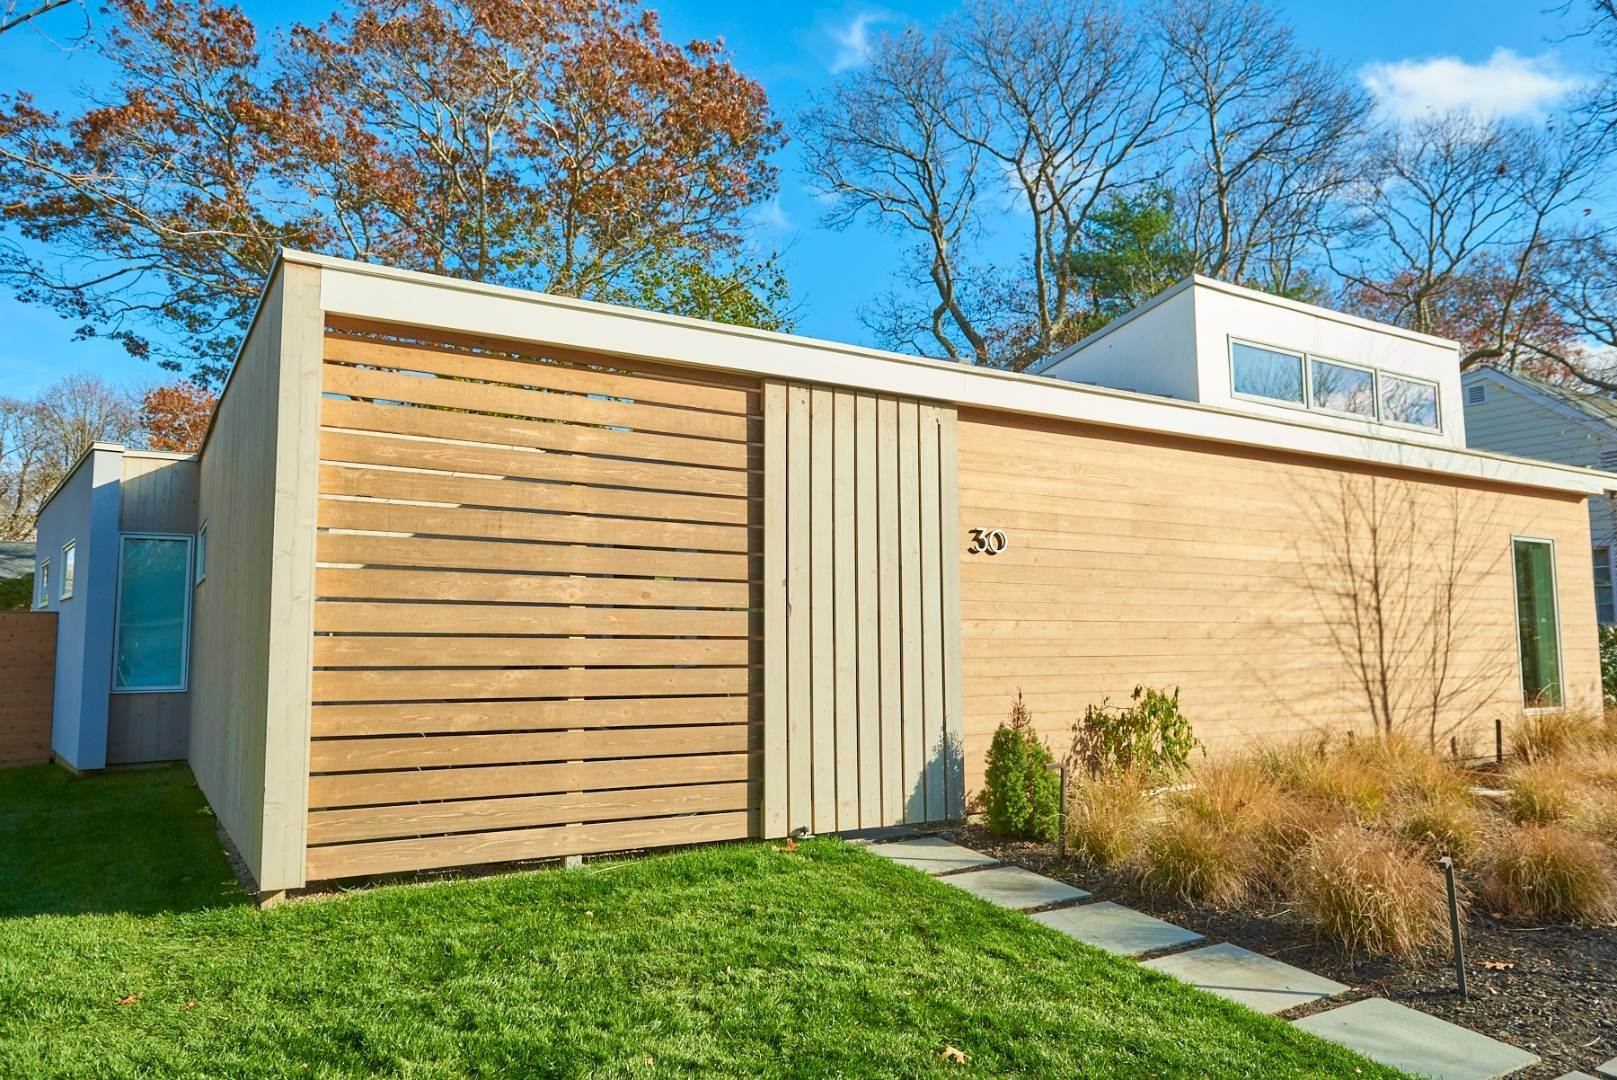 2. Single Family Home at Pine Neck Modern Comfort 30 Birch Street, Sag Harbor, NY 11963